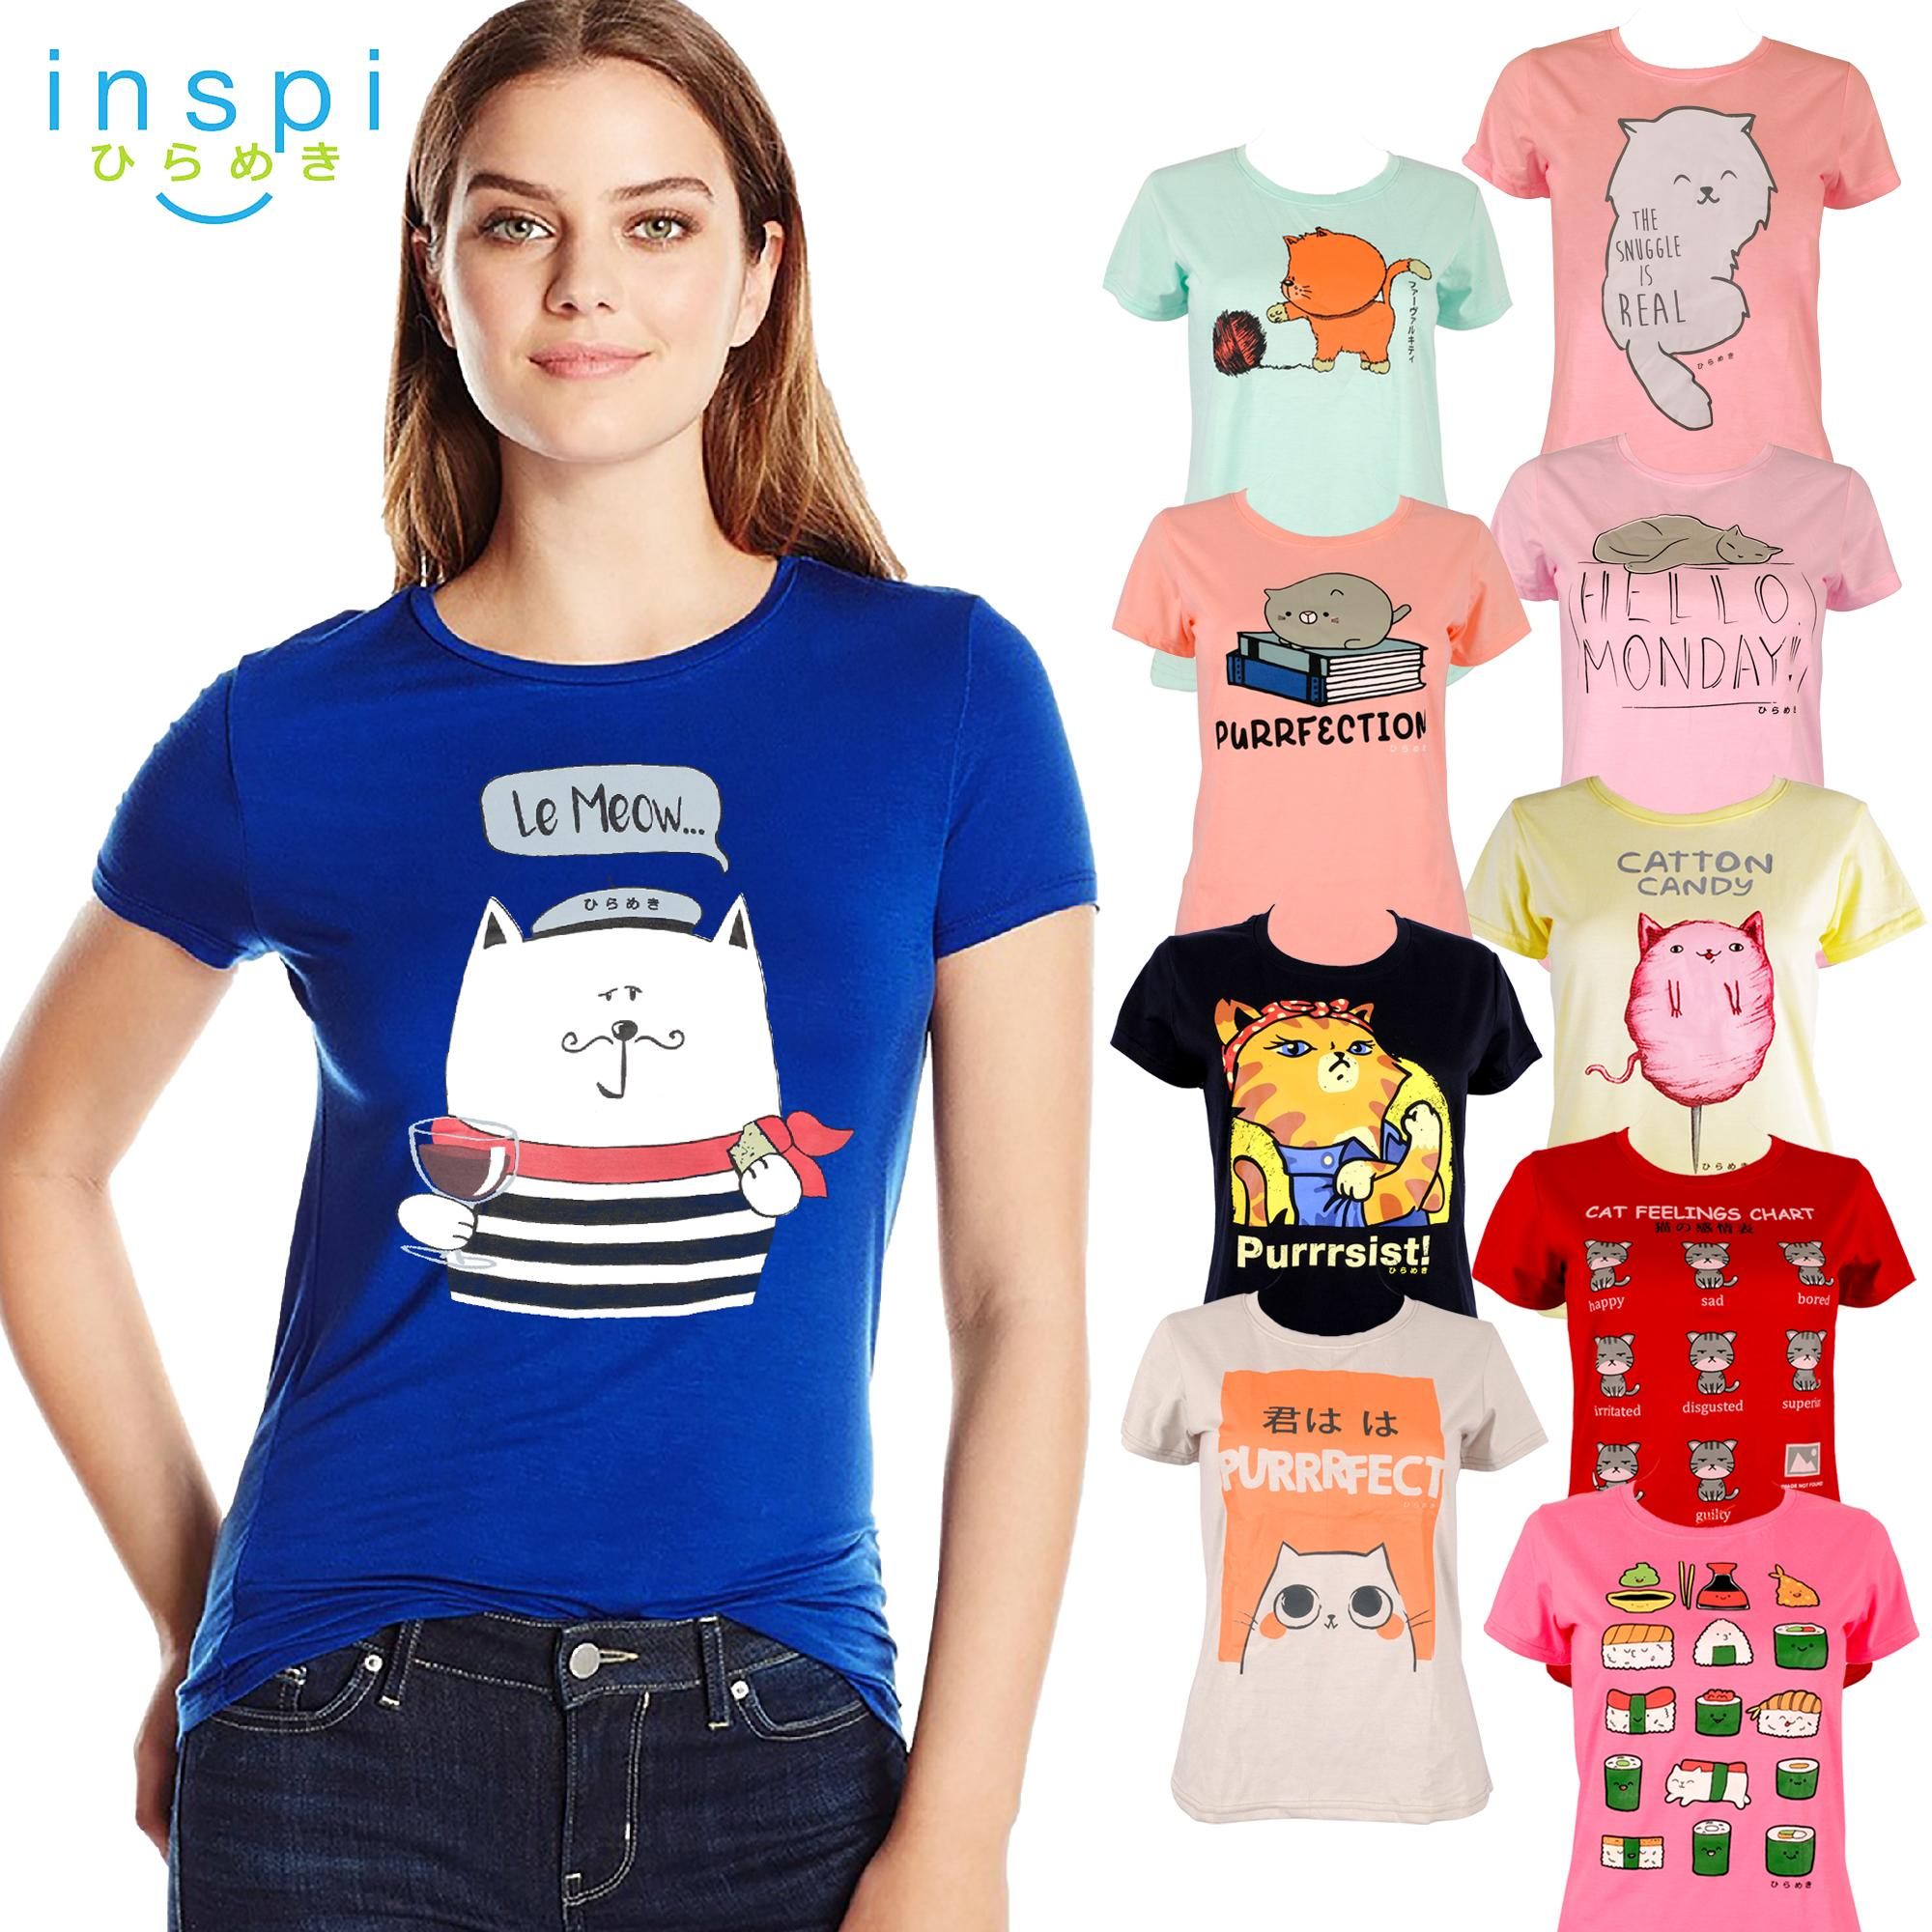 3e9ae335 INSPI Tees Ladies Neko Collection tshirt printed graphic tee Ladies t shirt  shirts women tshirts for